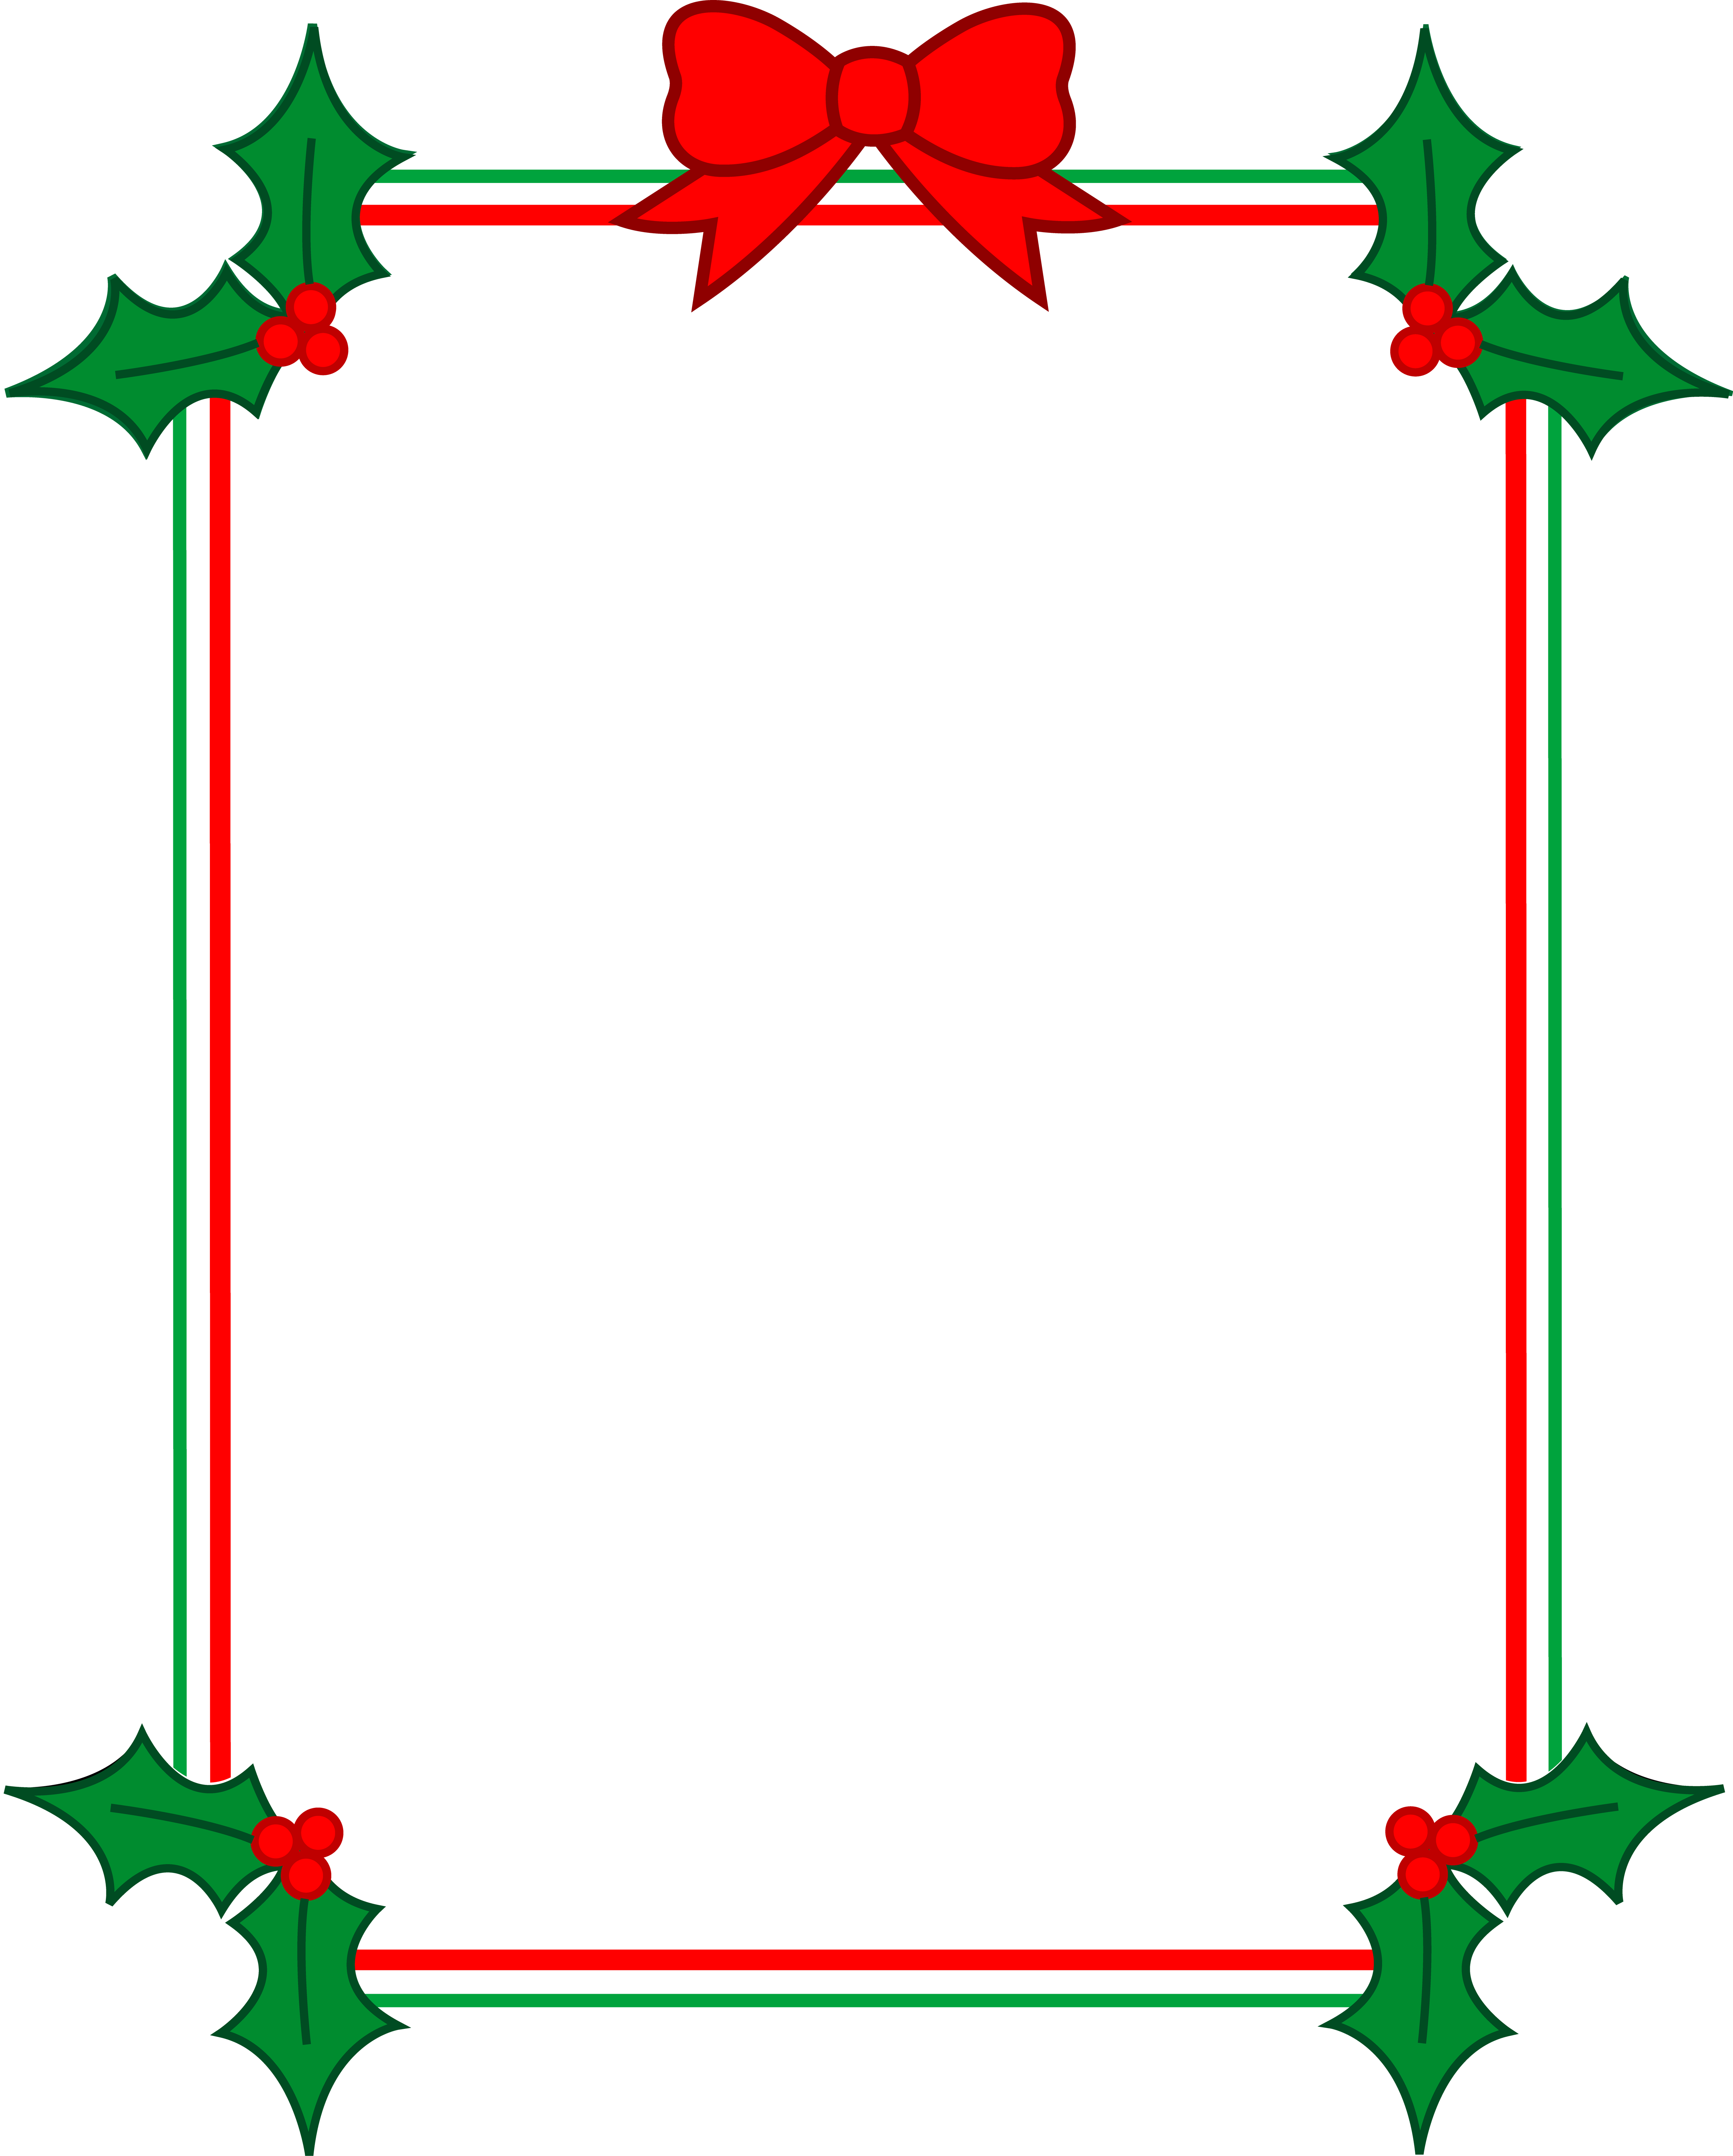 Clip art borders free. Christmas holly border png